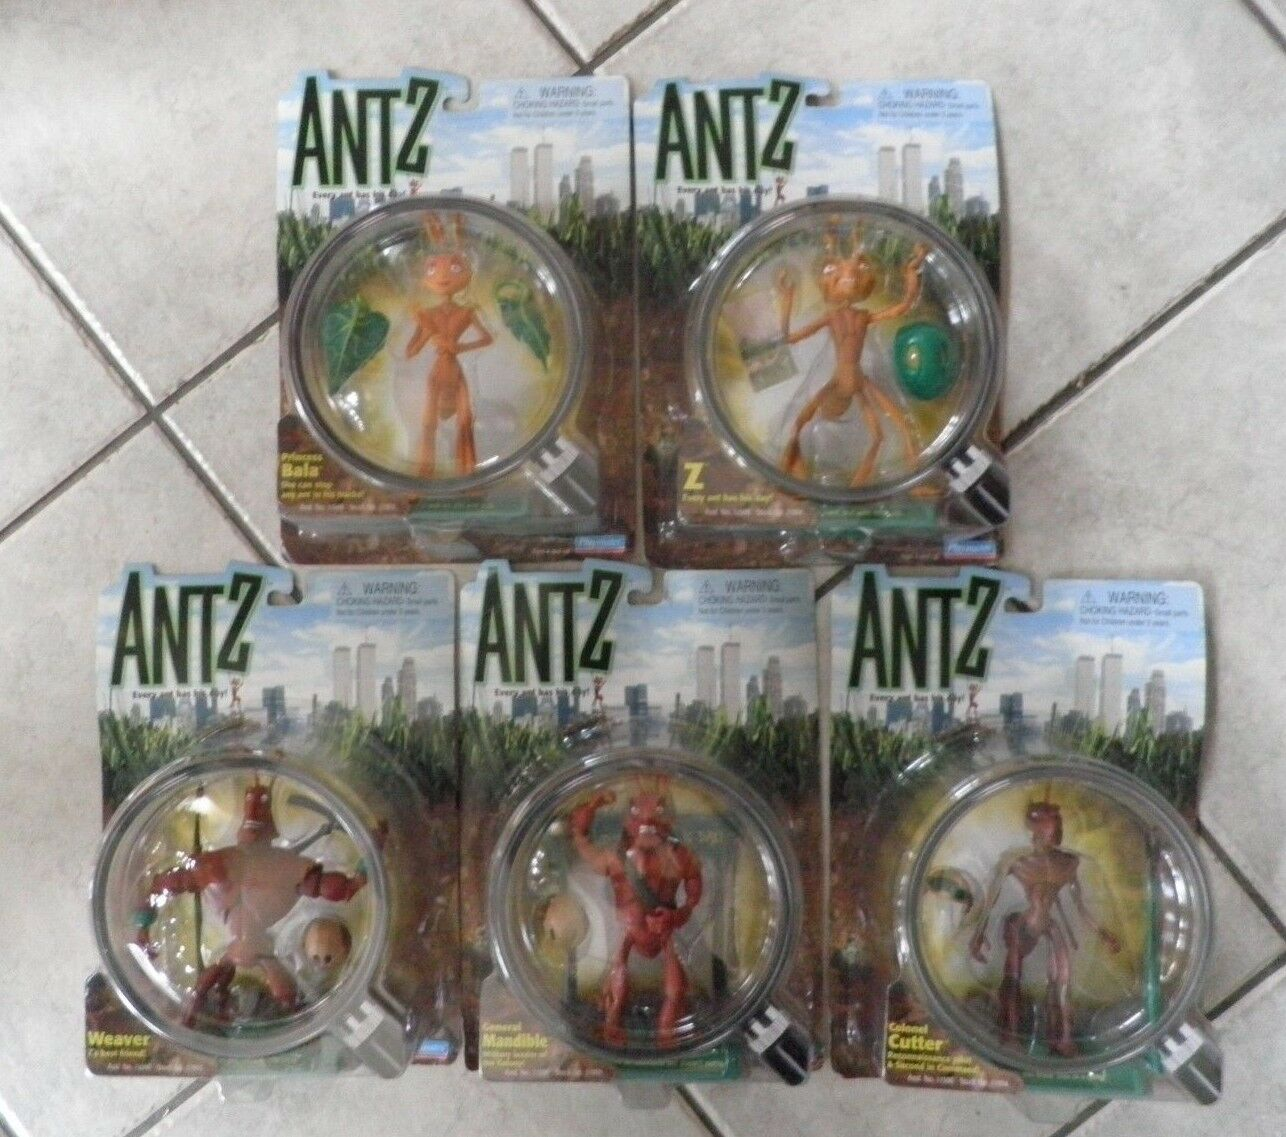 ANTZ - Dreamworks 1998 Set. Every Ant Has His Day . N.O.S. Pre-owned collectible